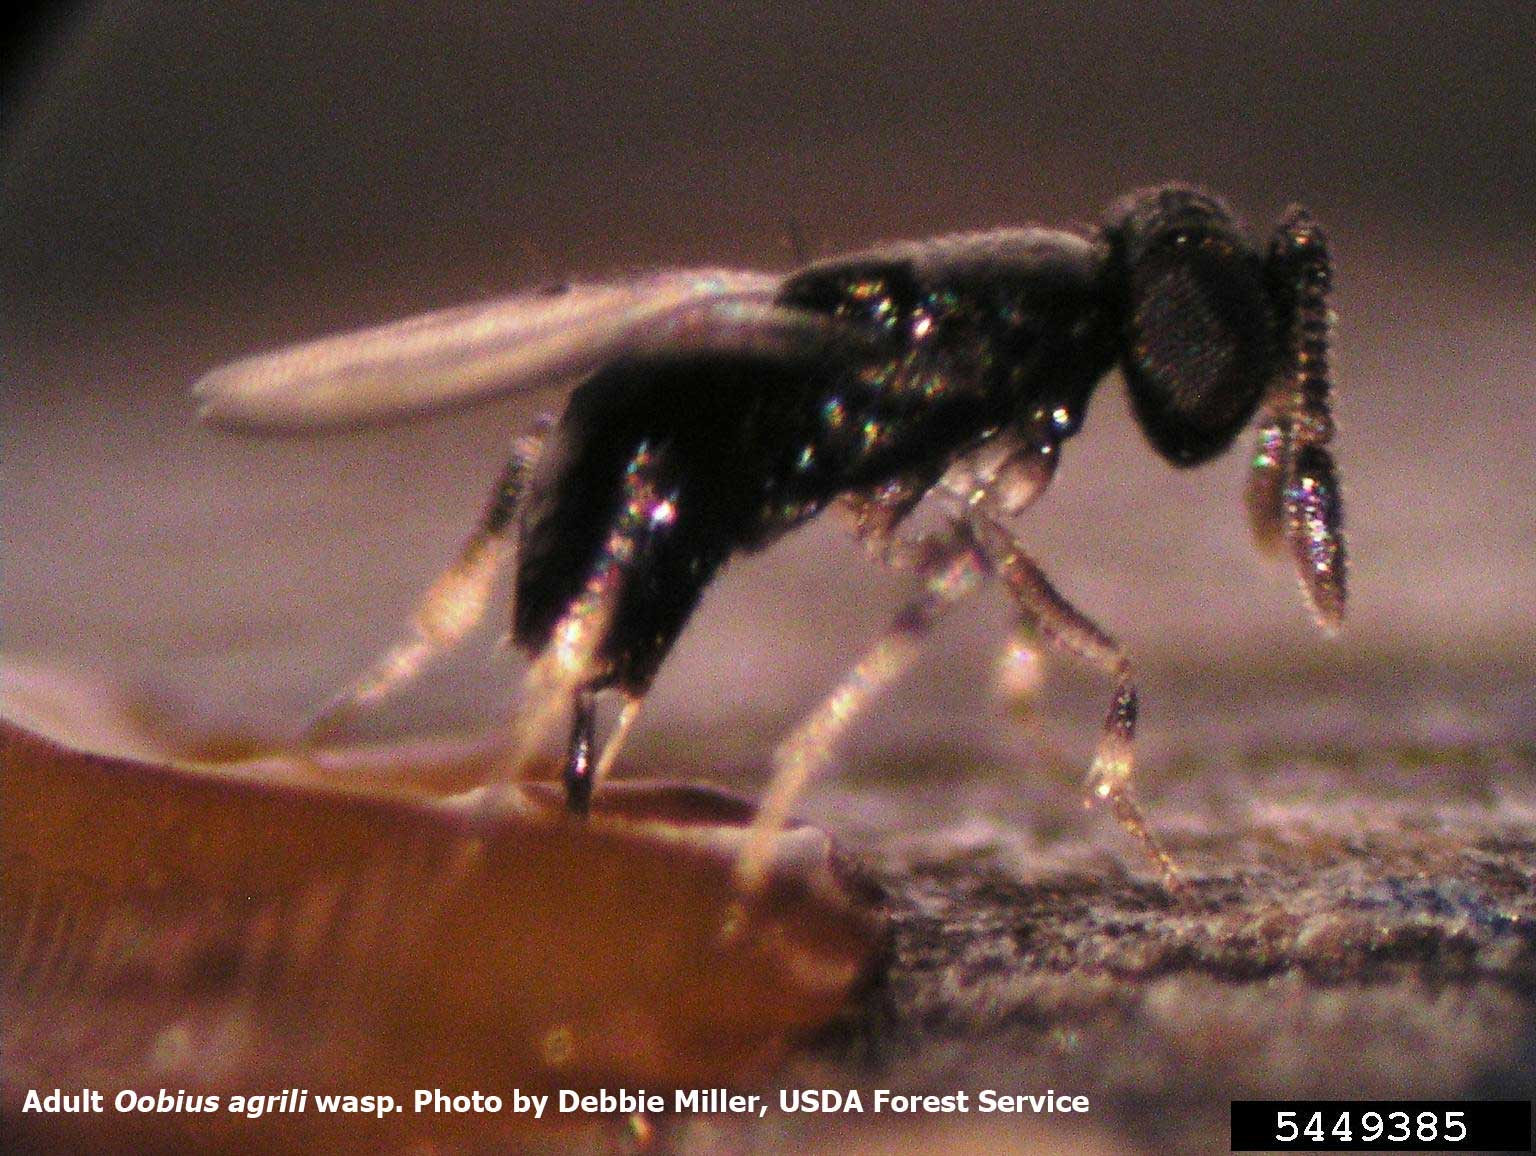 Adult Oobius agrili wasp - photo by Debbie Miller, USDA Forest Service